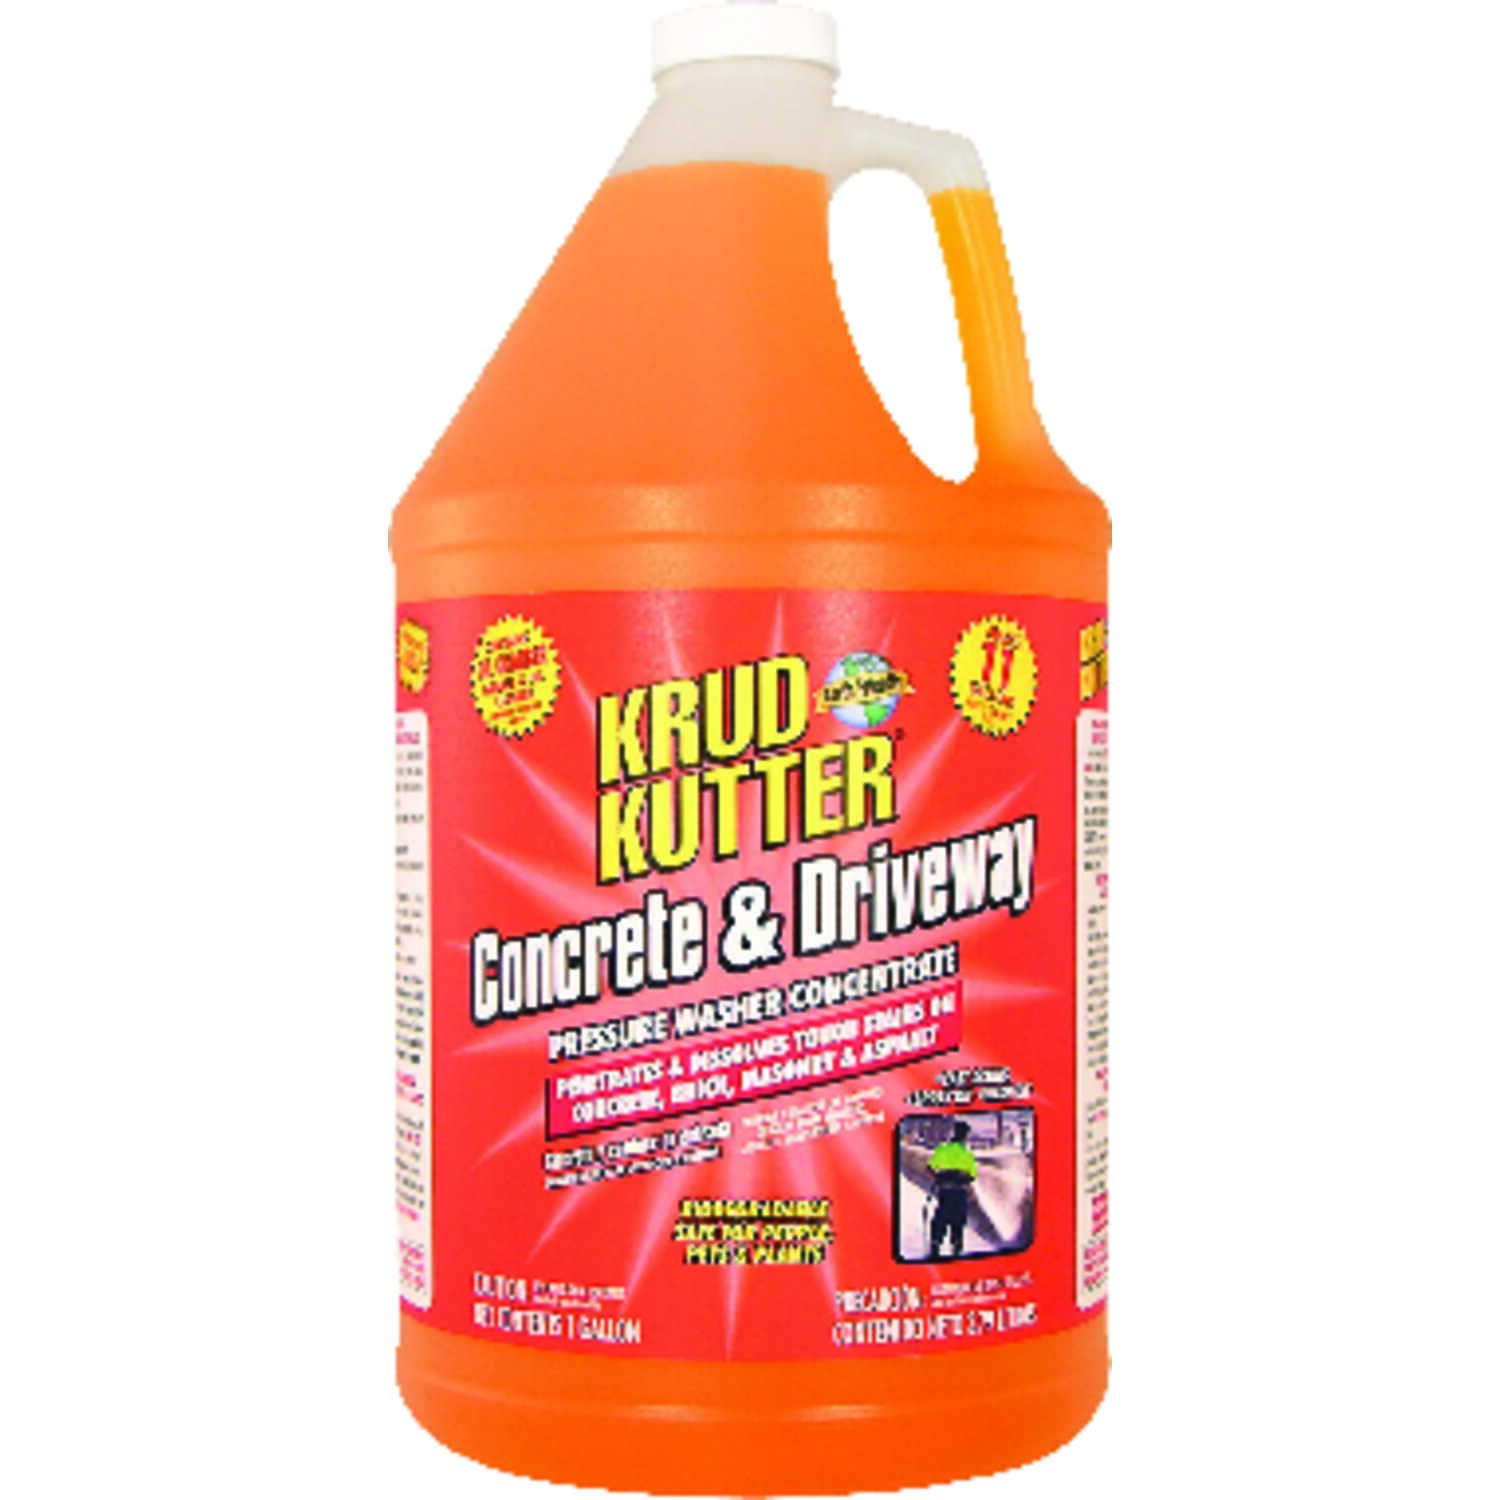 Krud Kutter  Concrete and Driveway Pressure Washer Concentrates  1 oz. Liquid